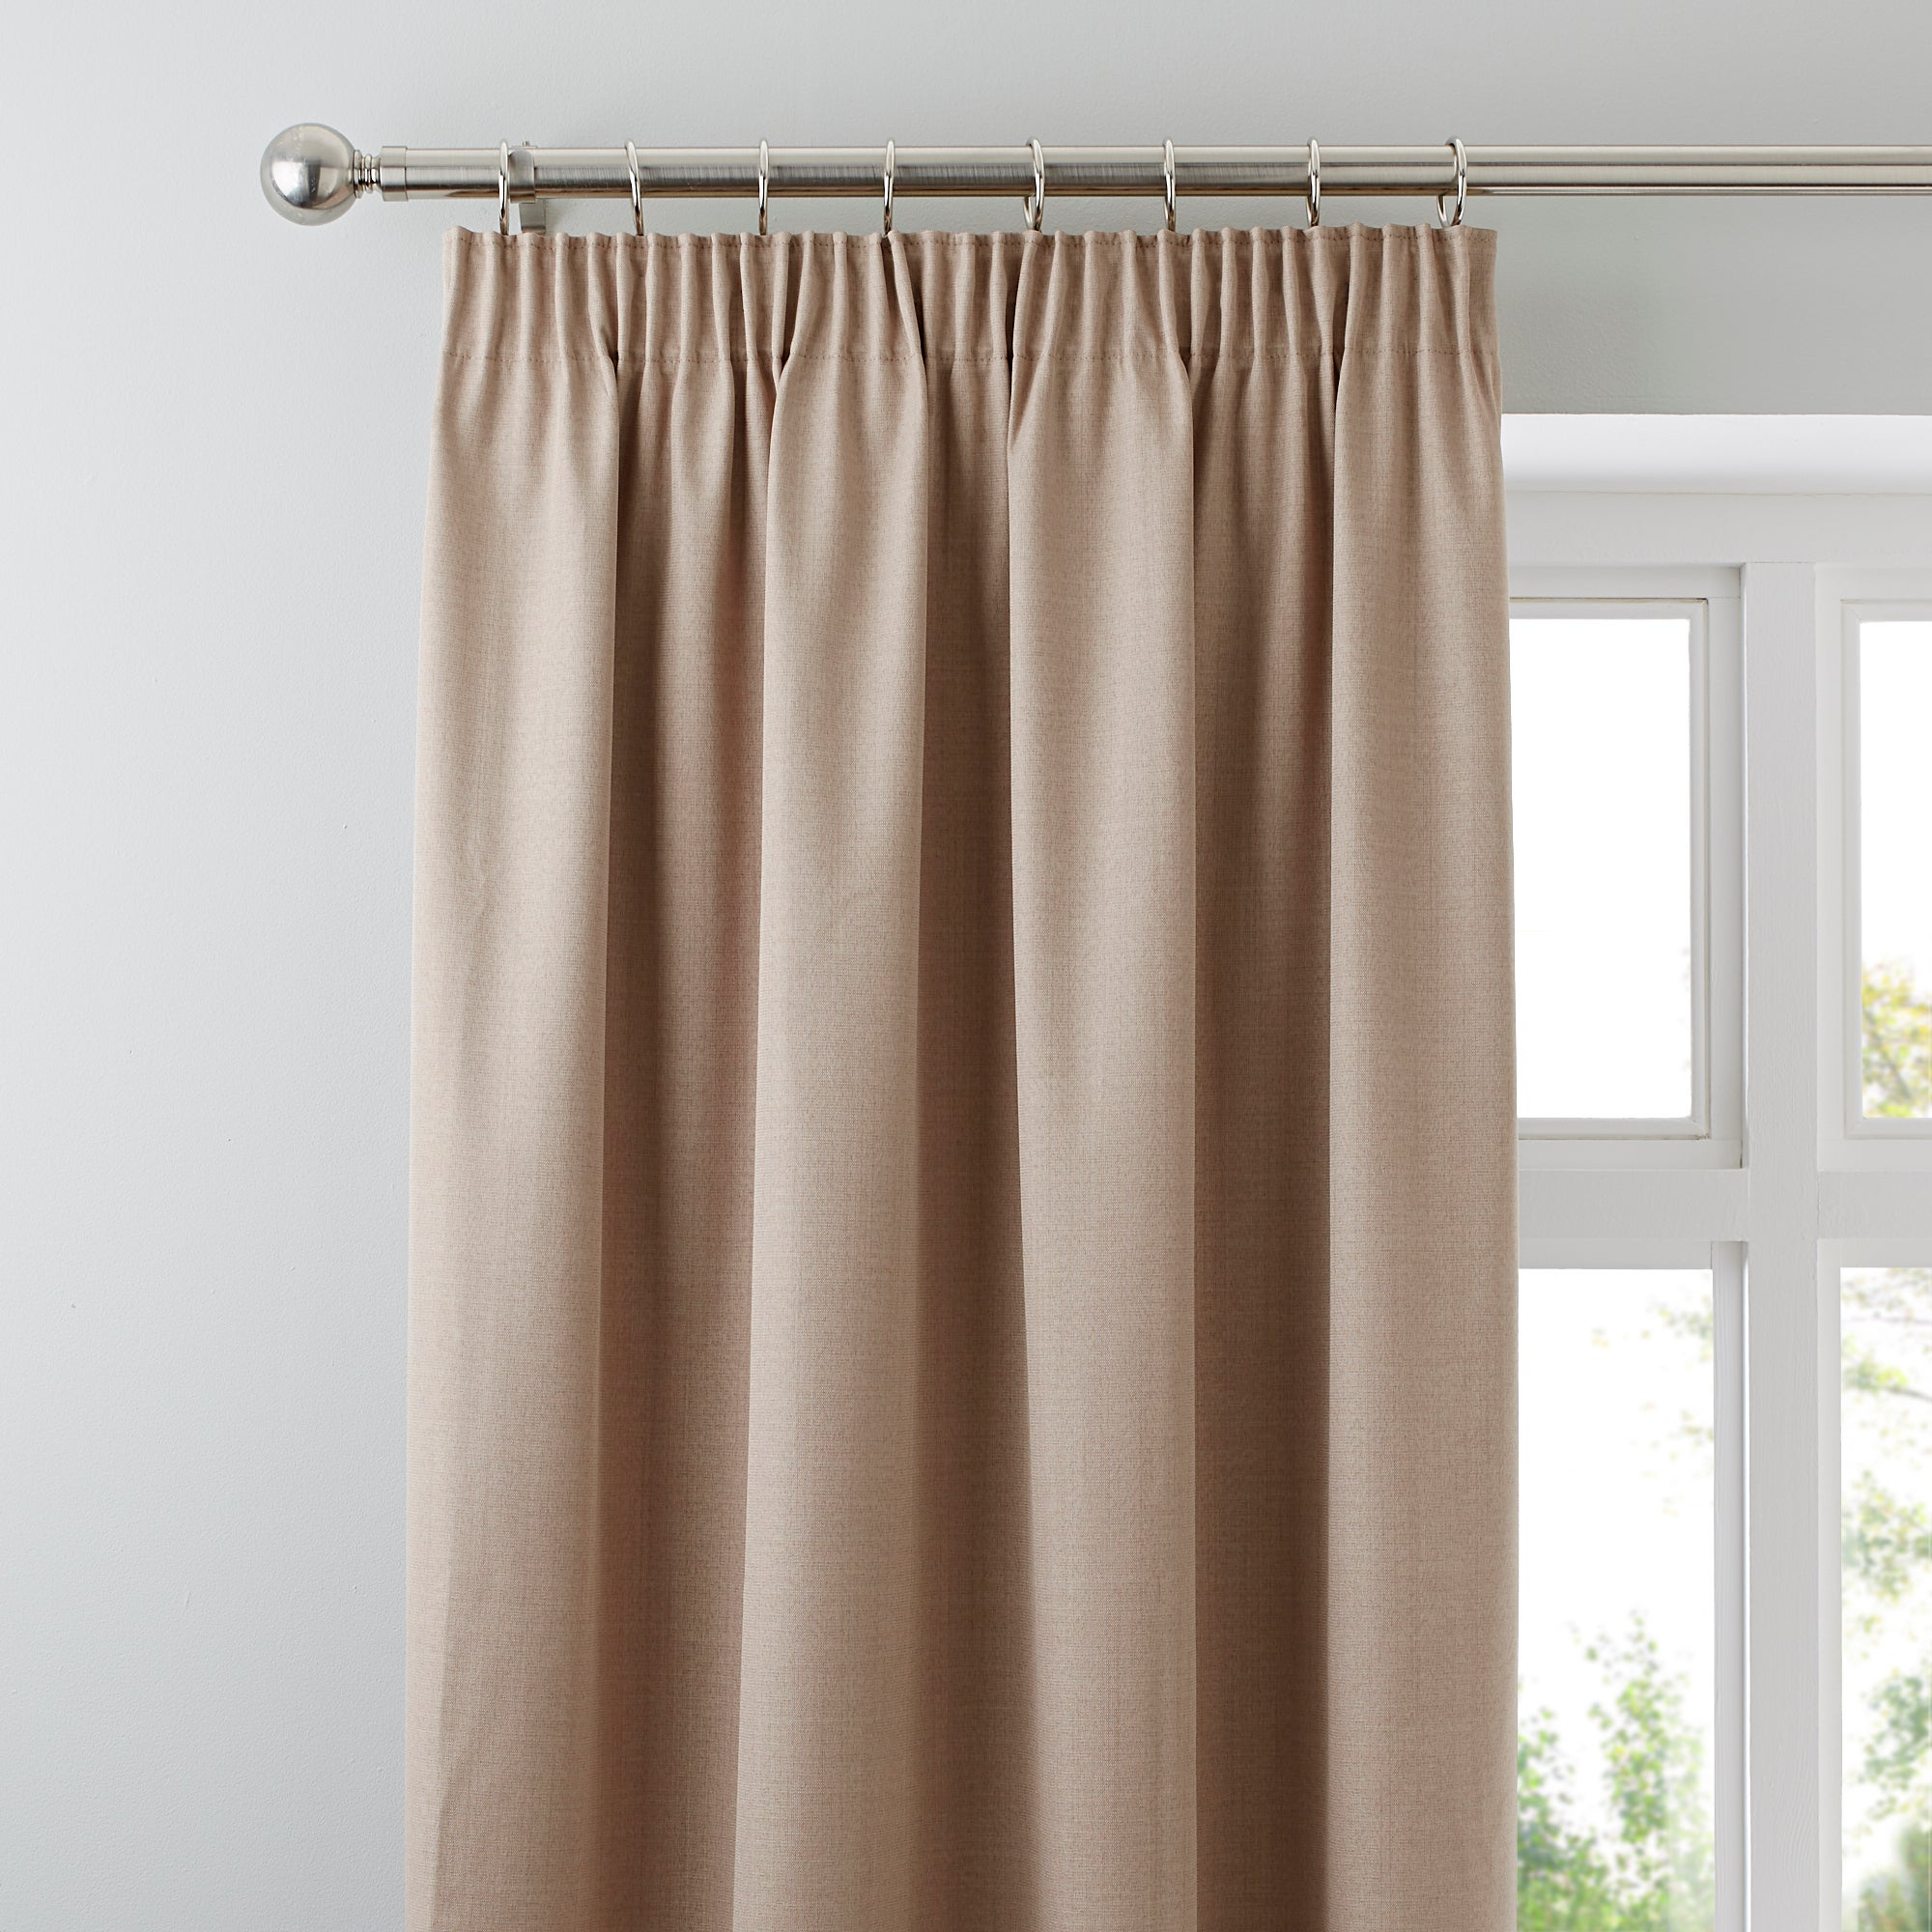 Waters and Noble Biscuit Solar Blackout Curtain Collection